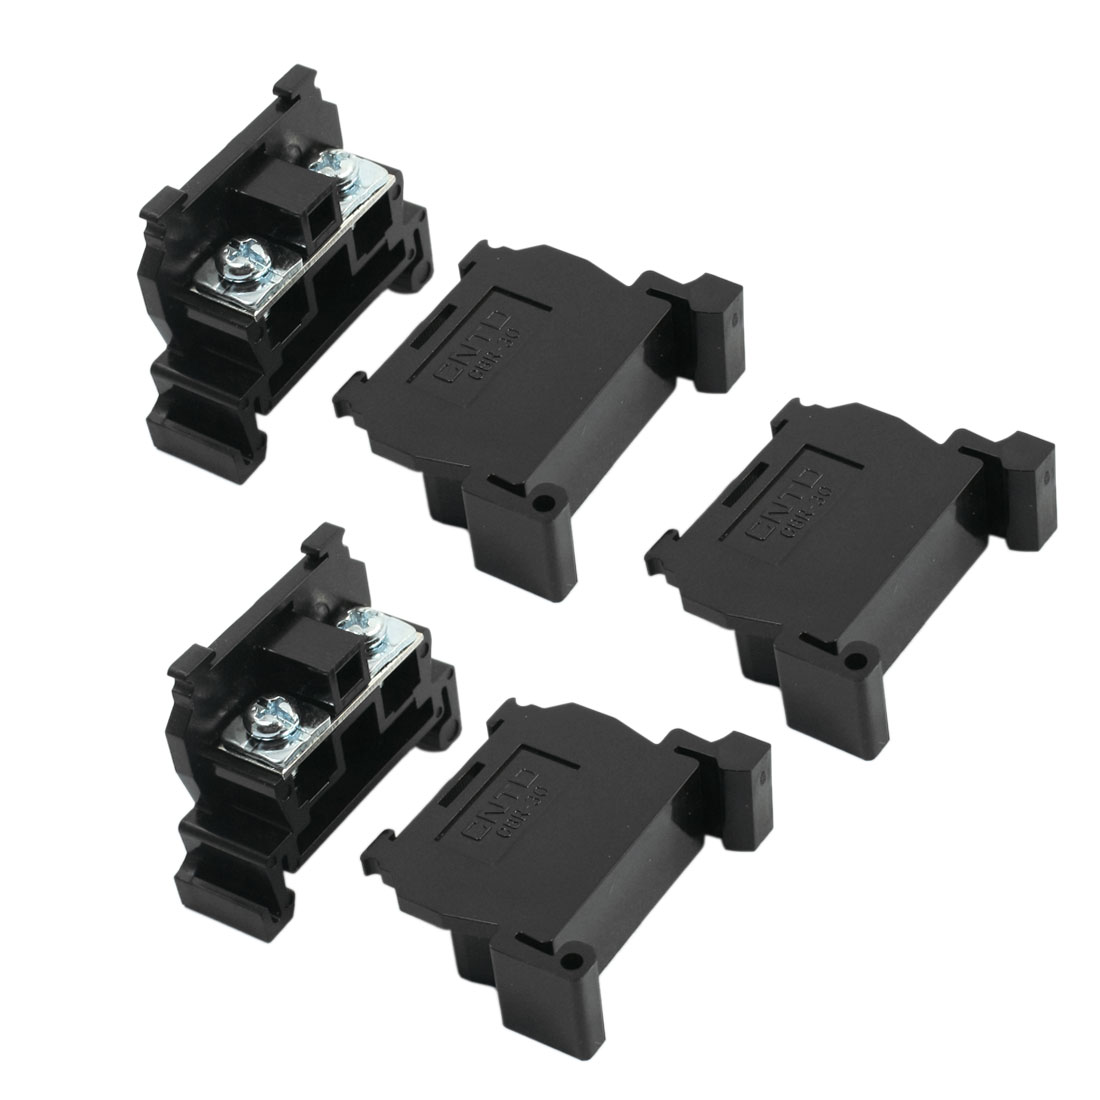 TBR-30A 600V 30A 2.5-4mm2 DIN Rail Mounting Plastic Cable Connecting Dual Screw Terminal Barrier Block 5Pcs